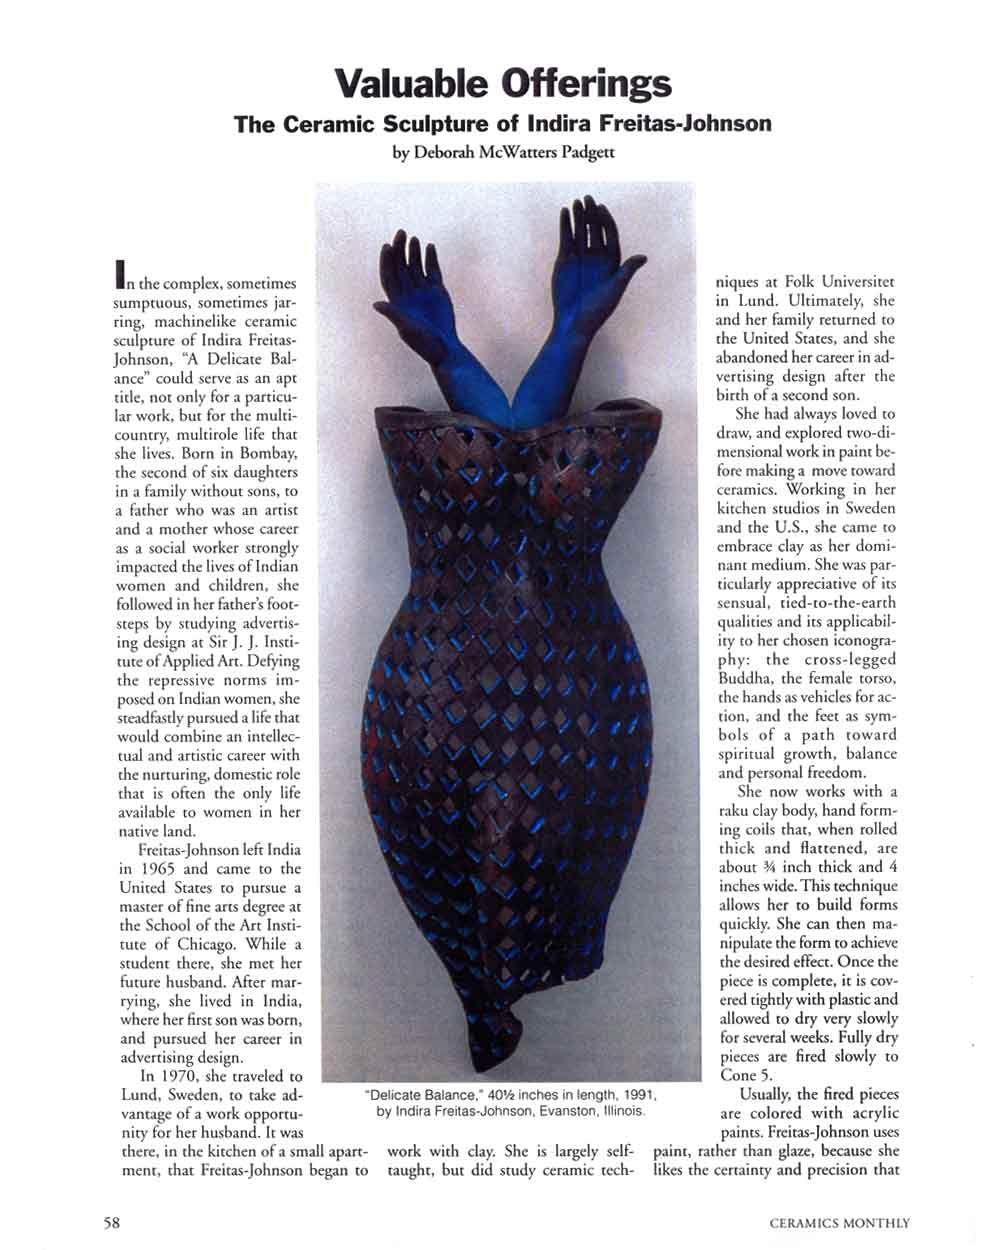 Valuable Offerings: The Ceramic Sculpture of Indira Freitas-Johnson, article, pg 1